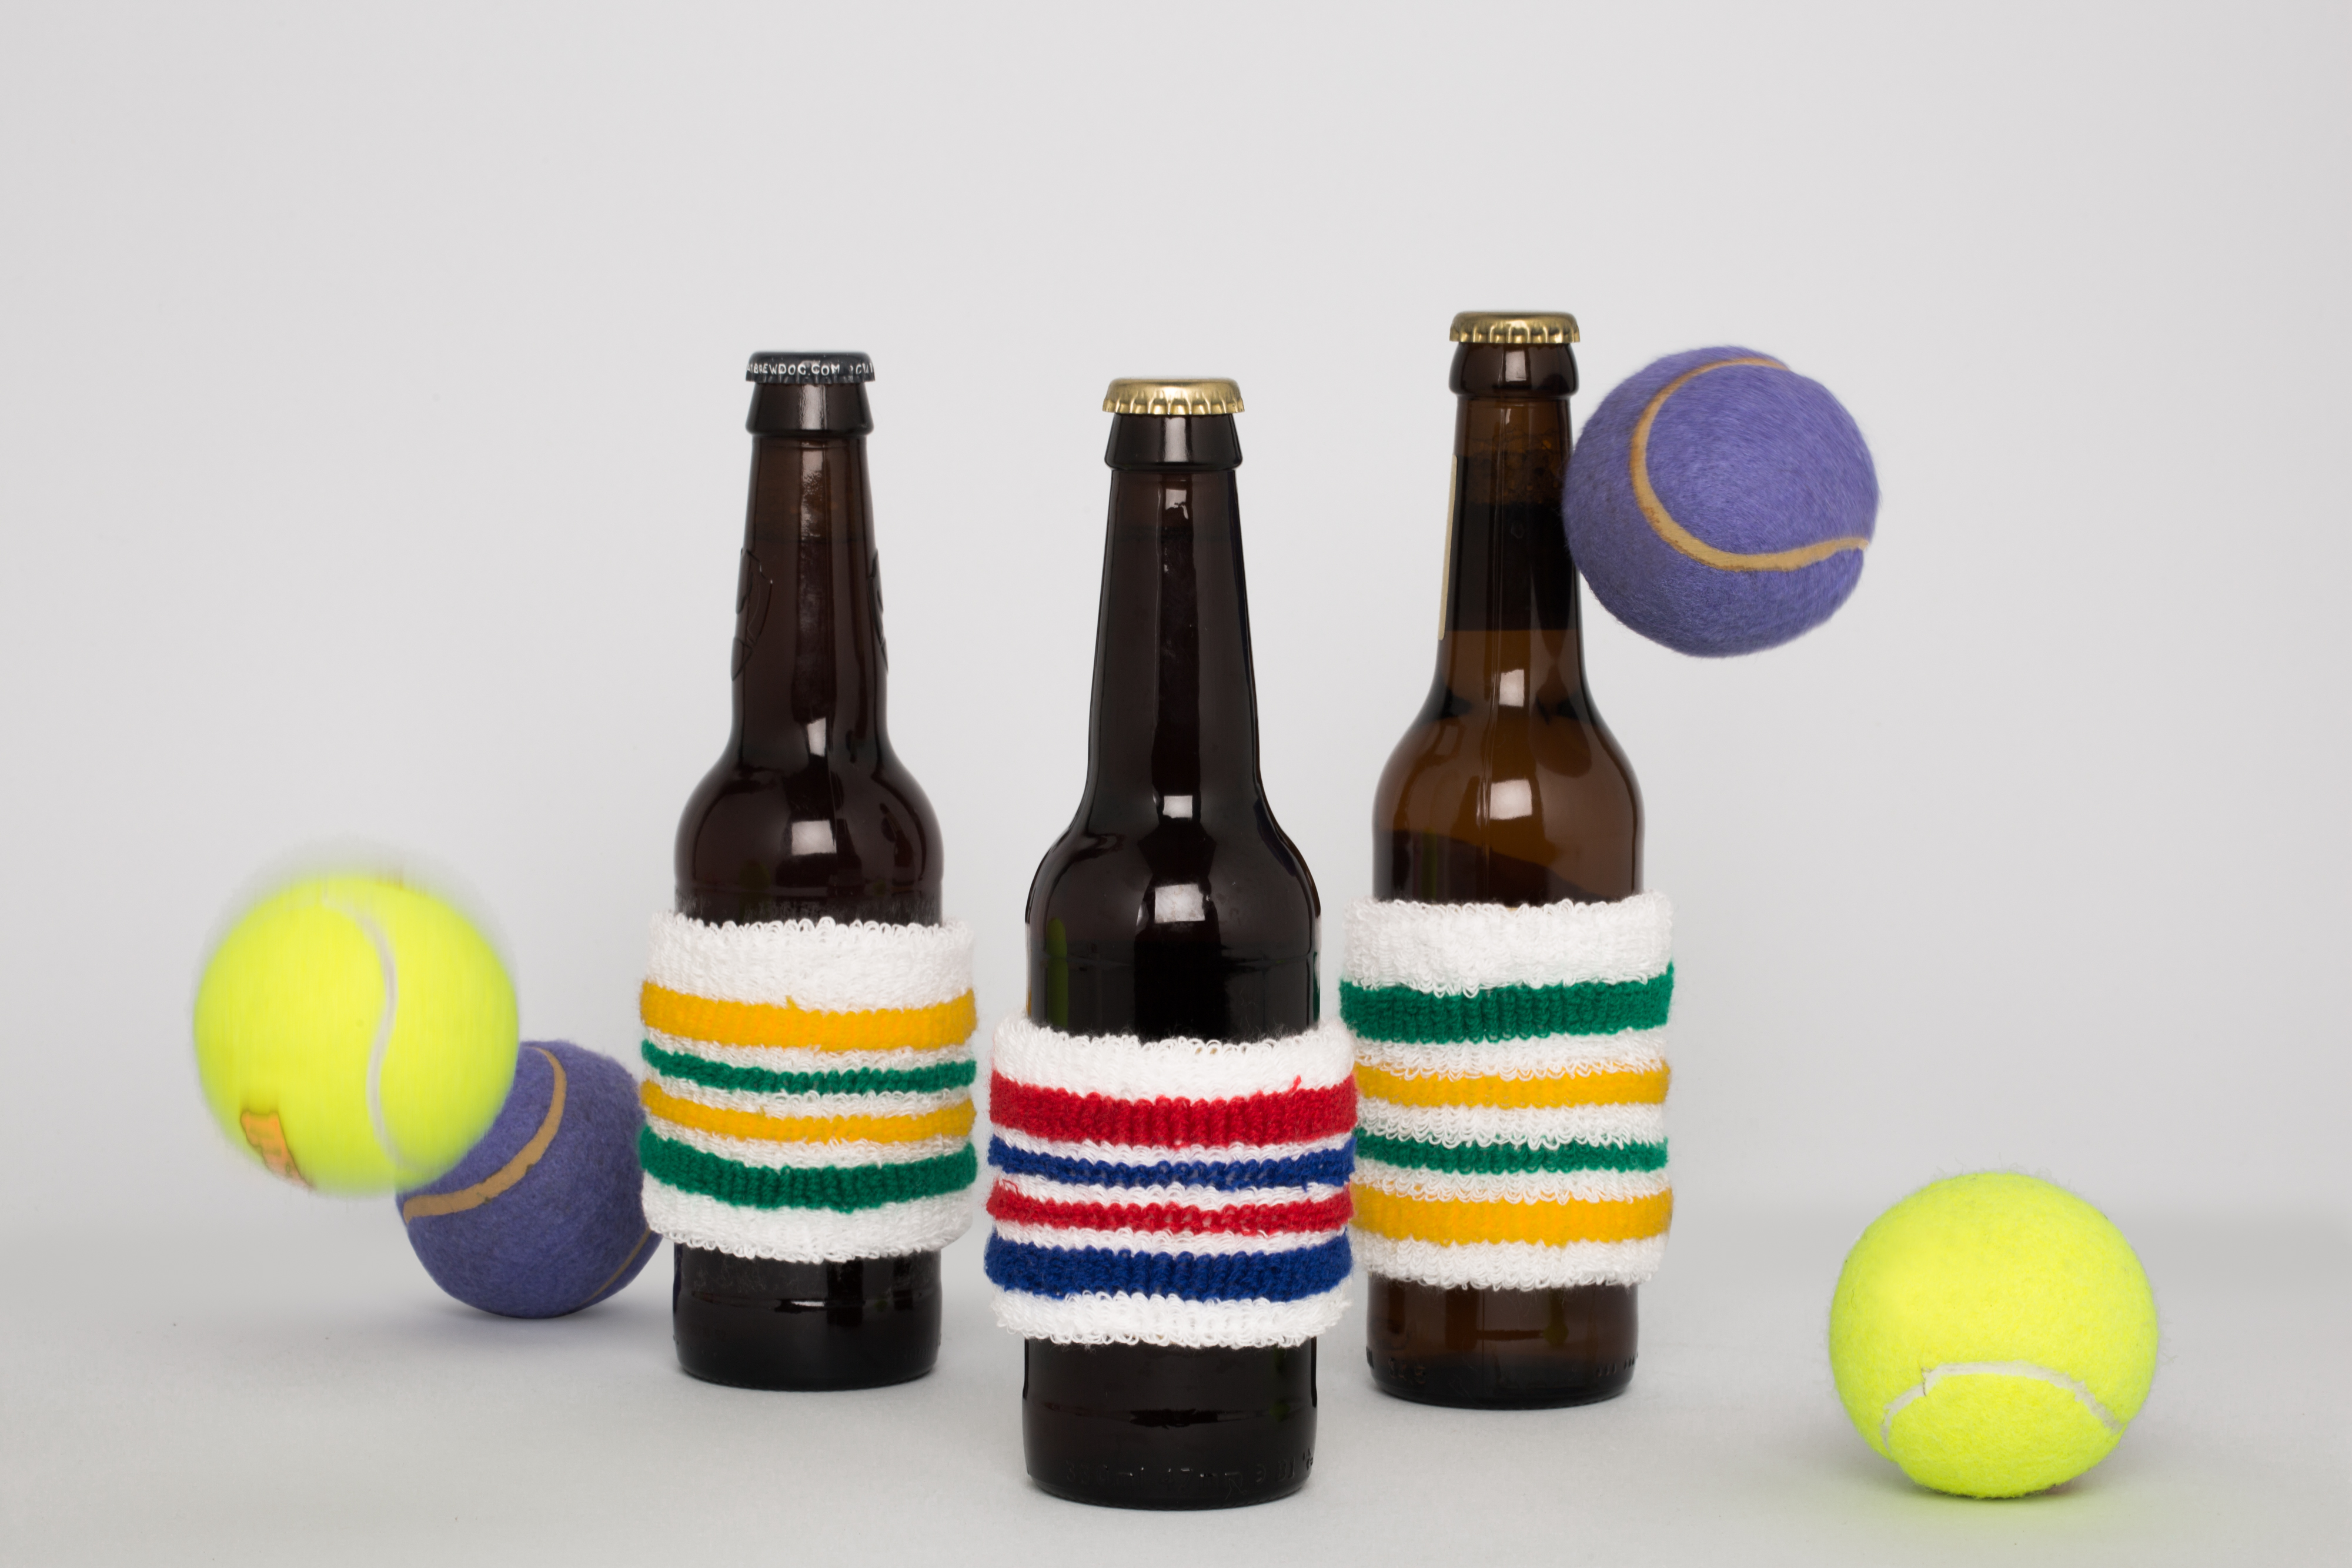 Mindful Drinking Festival non-alcoholic beers